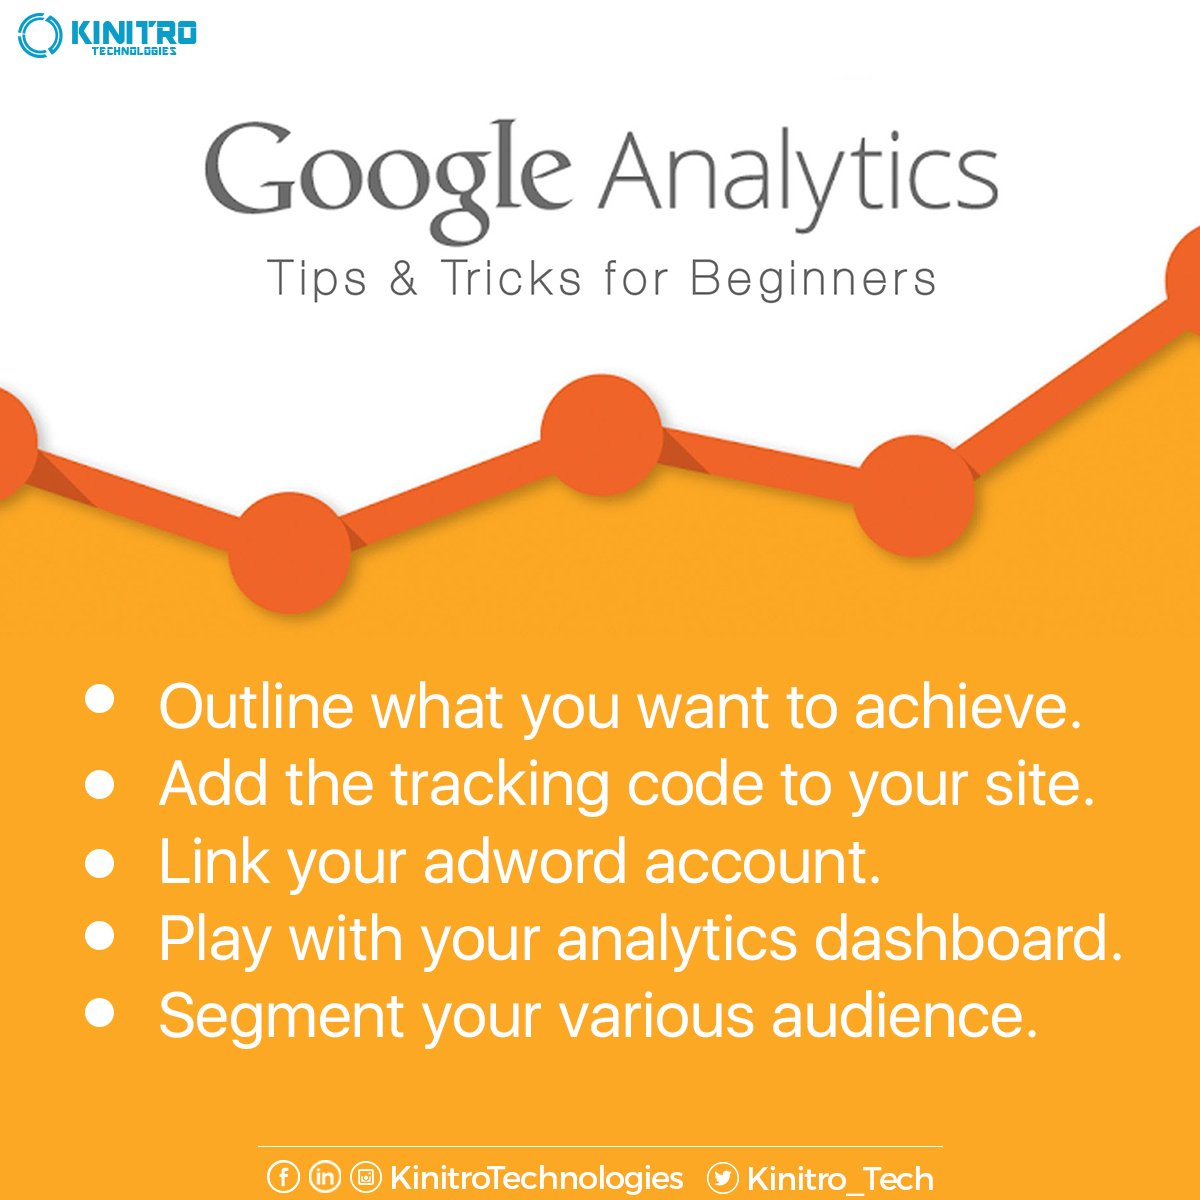 Use Google Analytics tricks to Grow your Business and Re-Target your preferred Audience. #DigitalMarketing #GoogleAnalytics https://t.co/E1wVnfx3ZJ